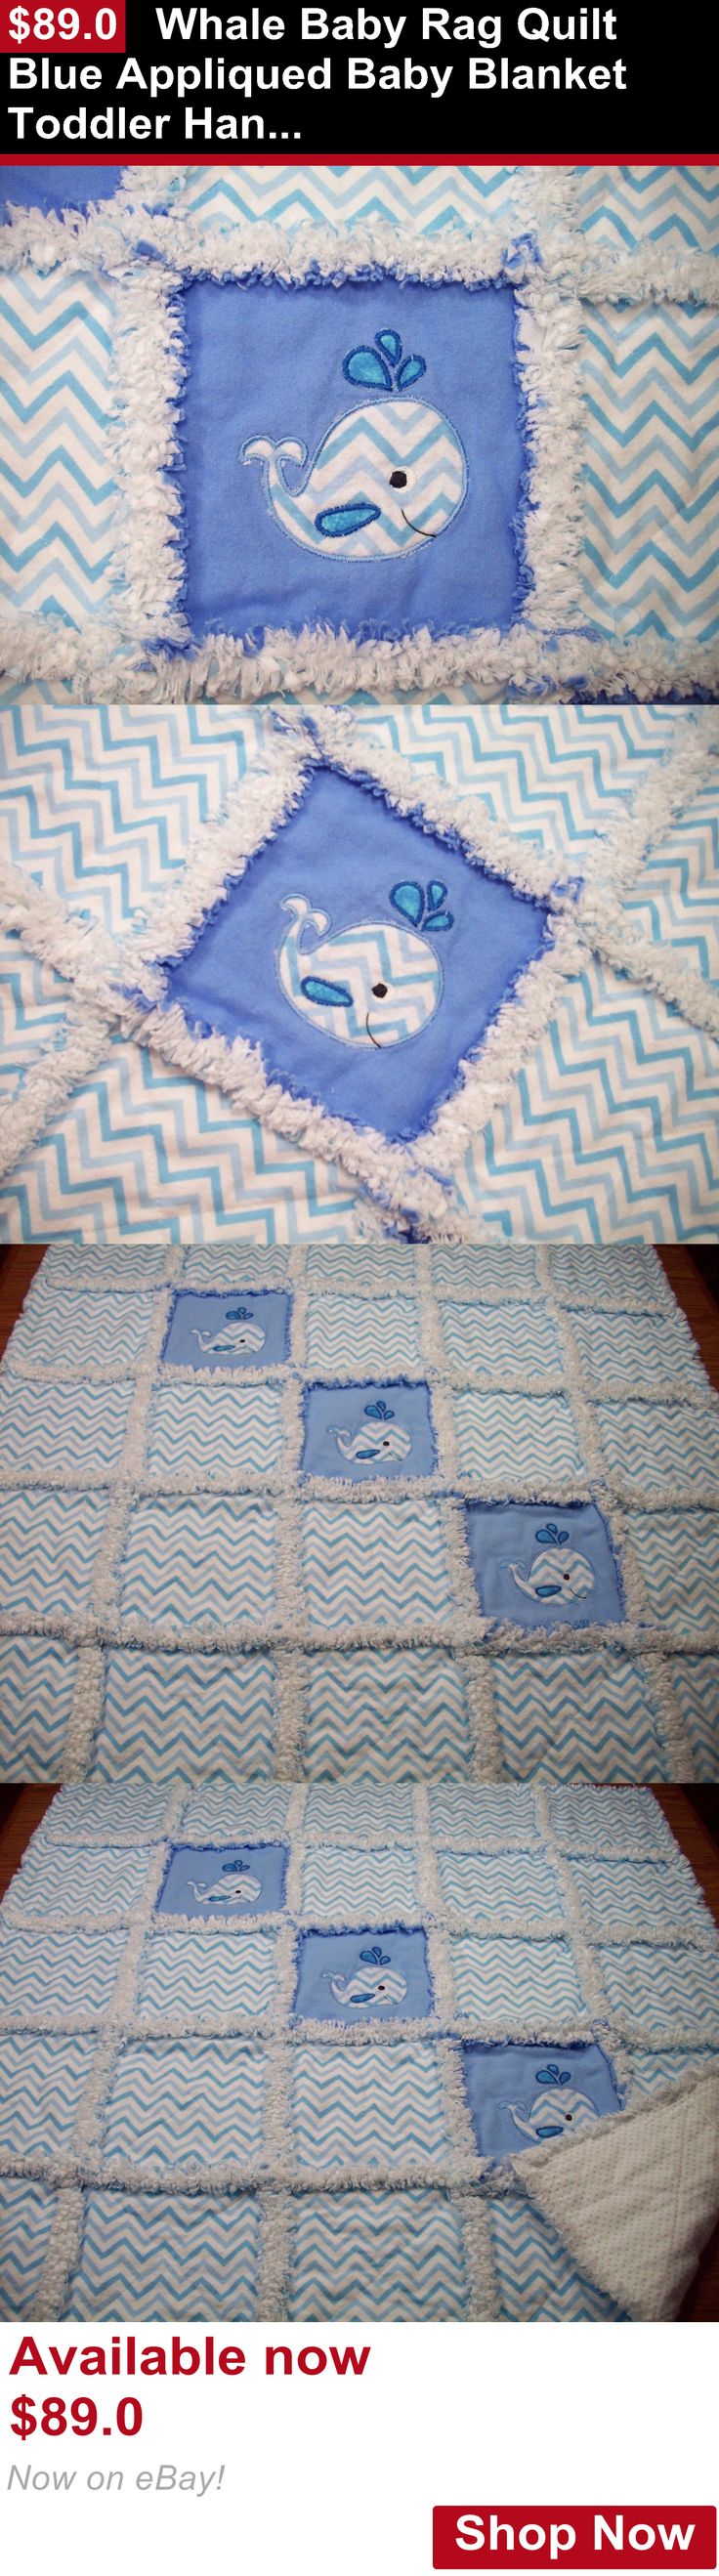 Quilts And Coverlets: Whale Baby Rag Quilt Blue Appliqued Baby Blanket Toddler Handmade Crib Bedding BUY IT NOW ONLY: $89.0